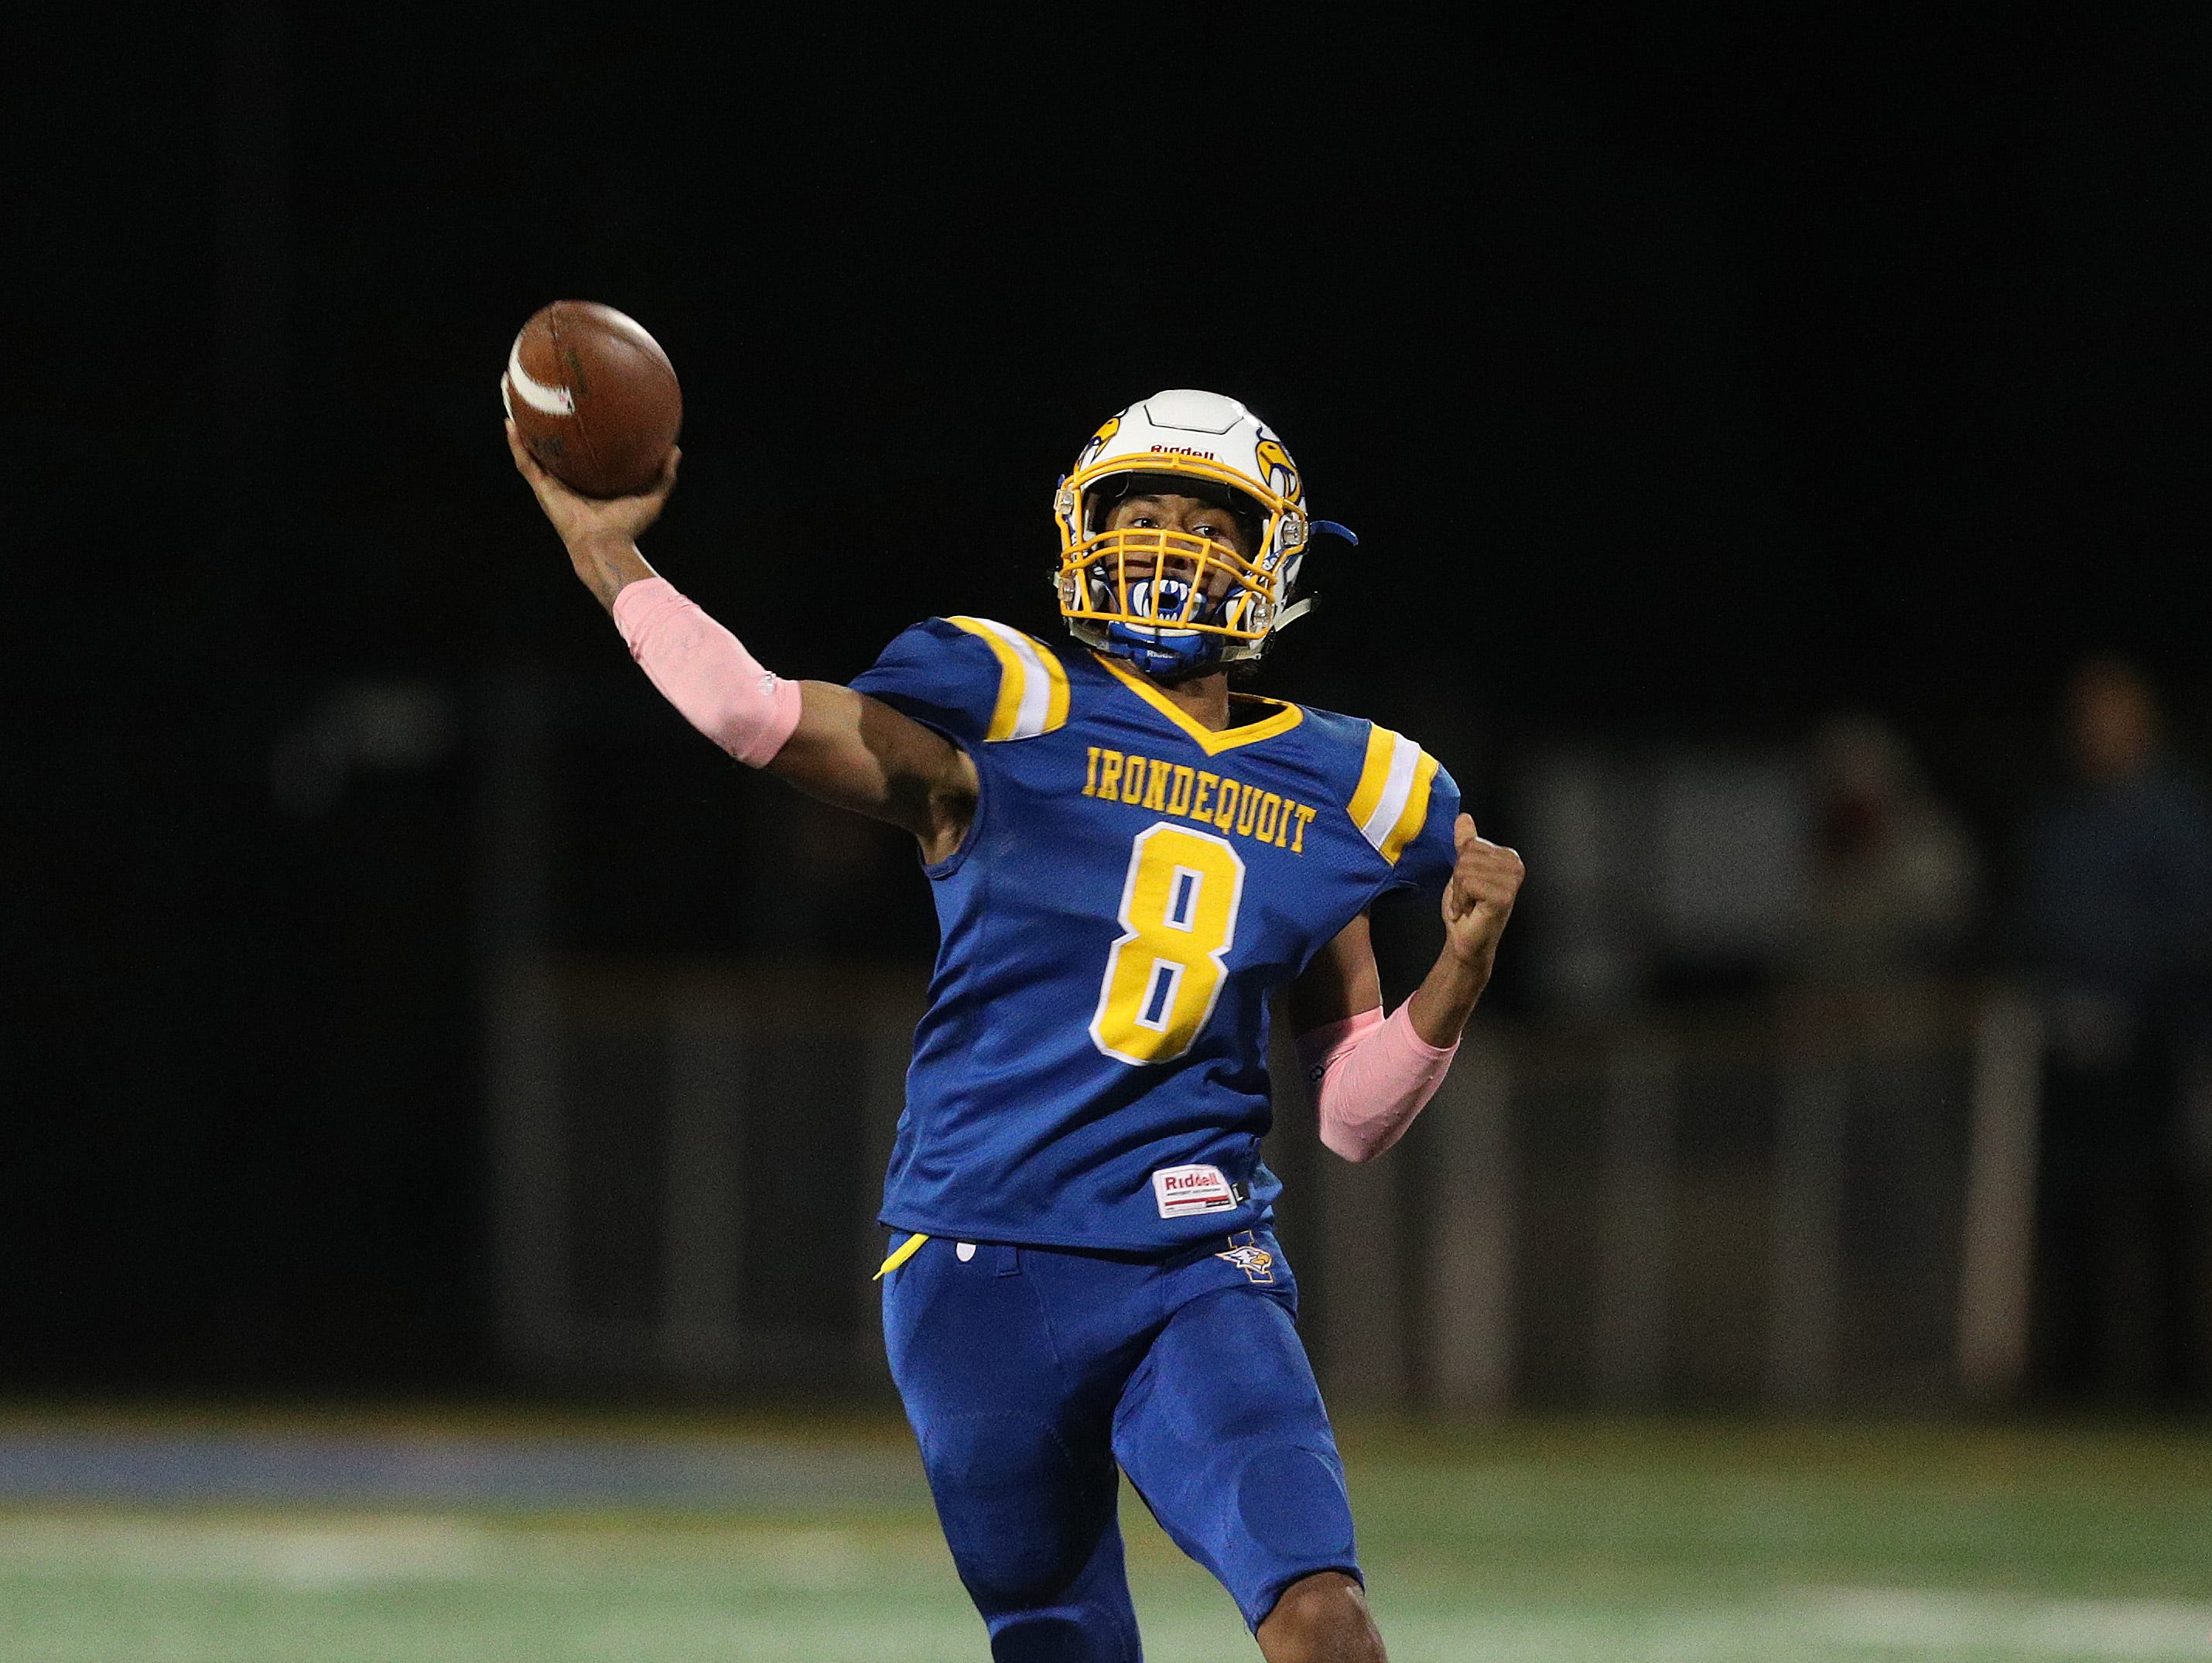 Irondequoit quarterback Freddy June Jr. makes this pass while rolling to his right.